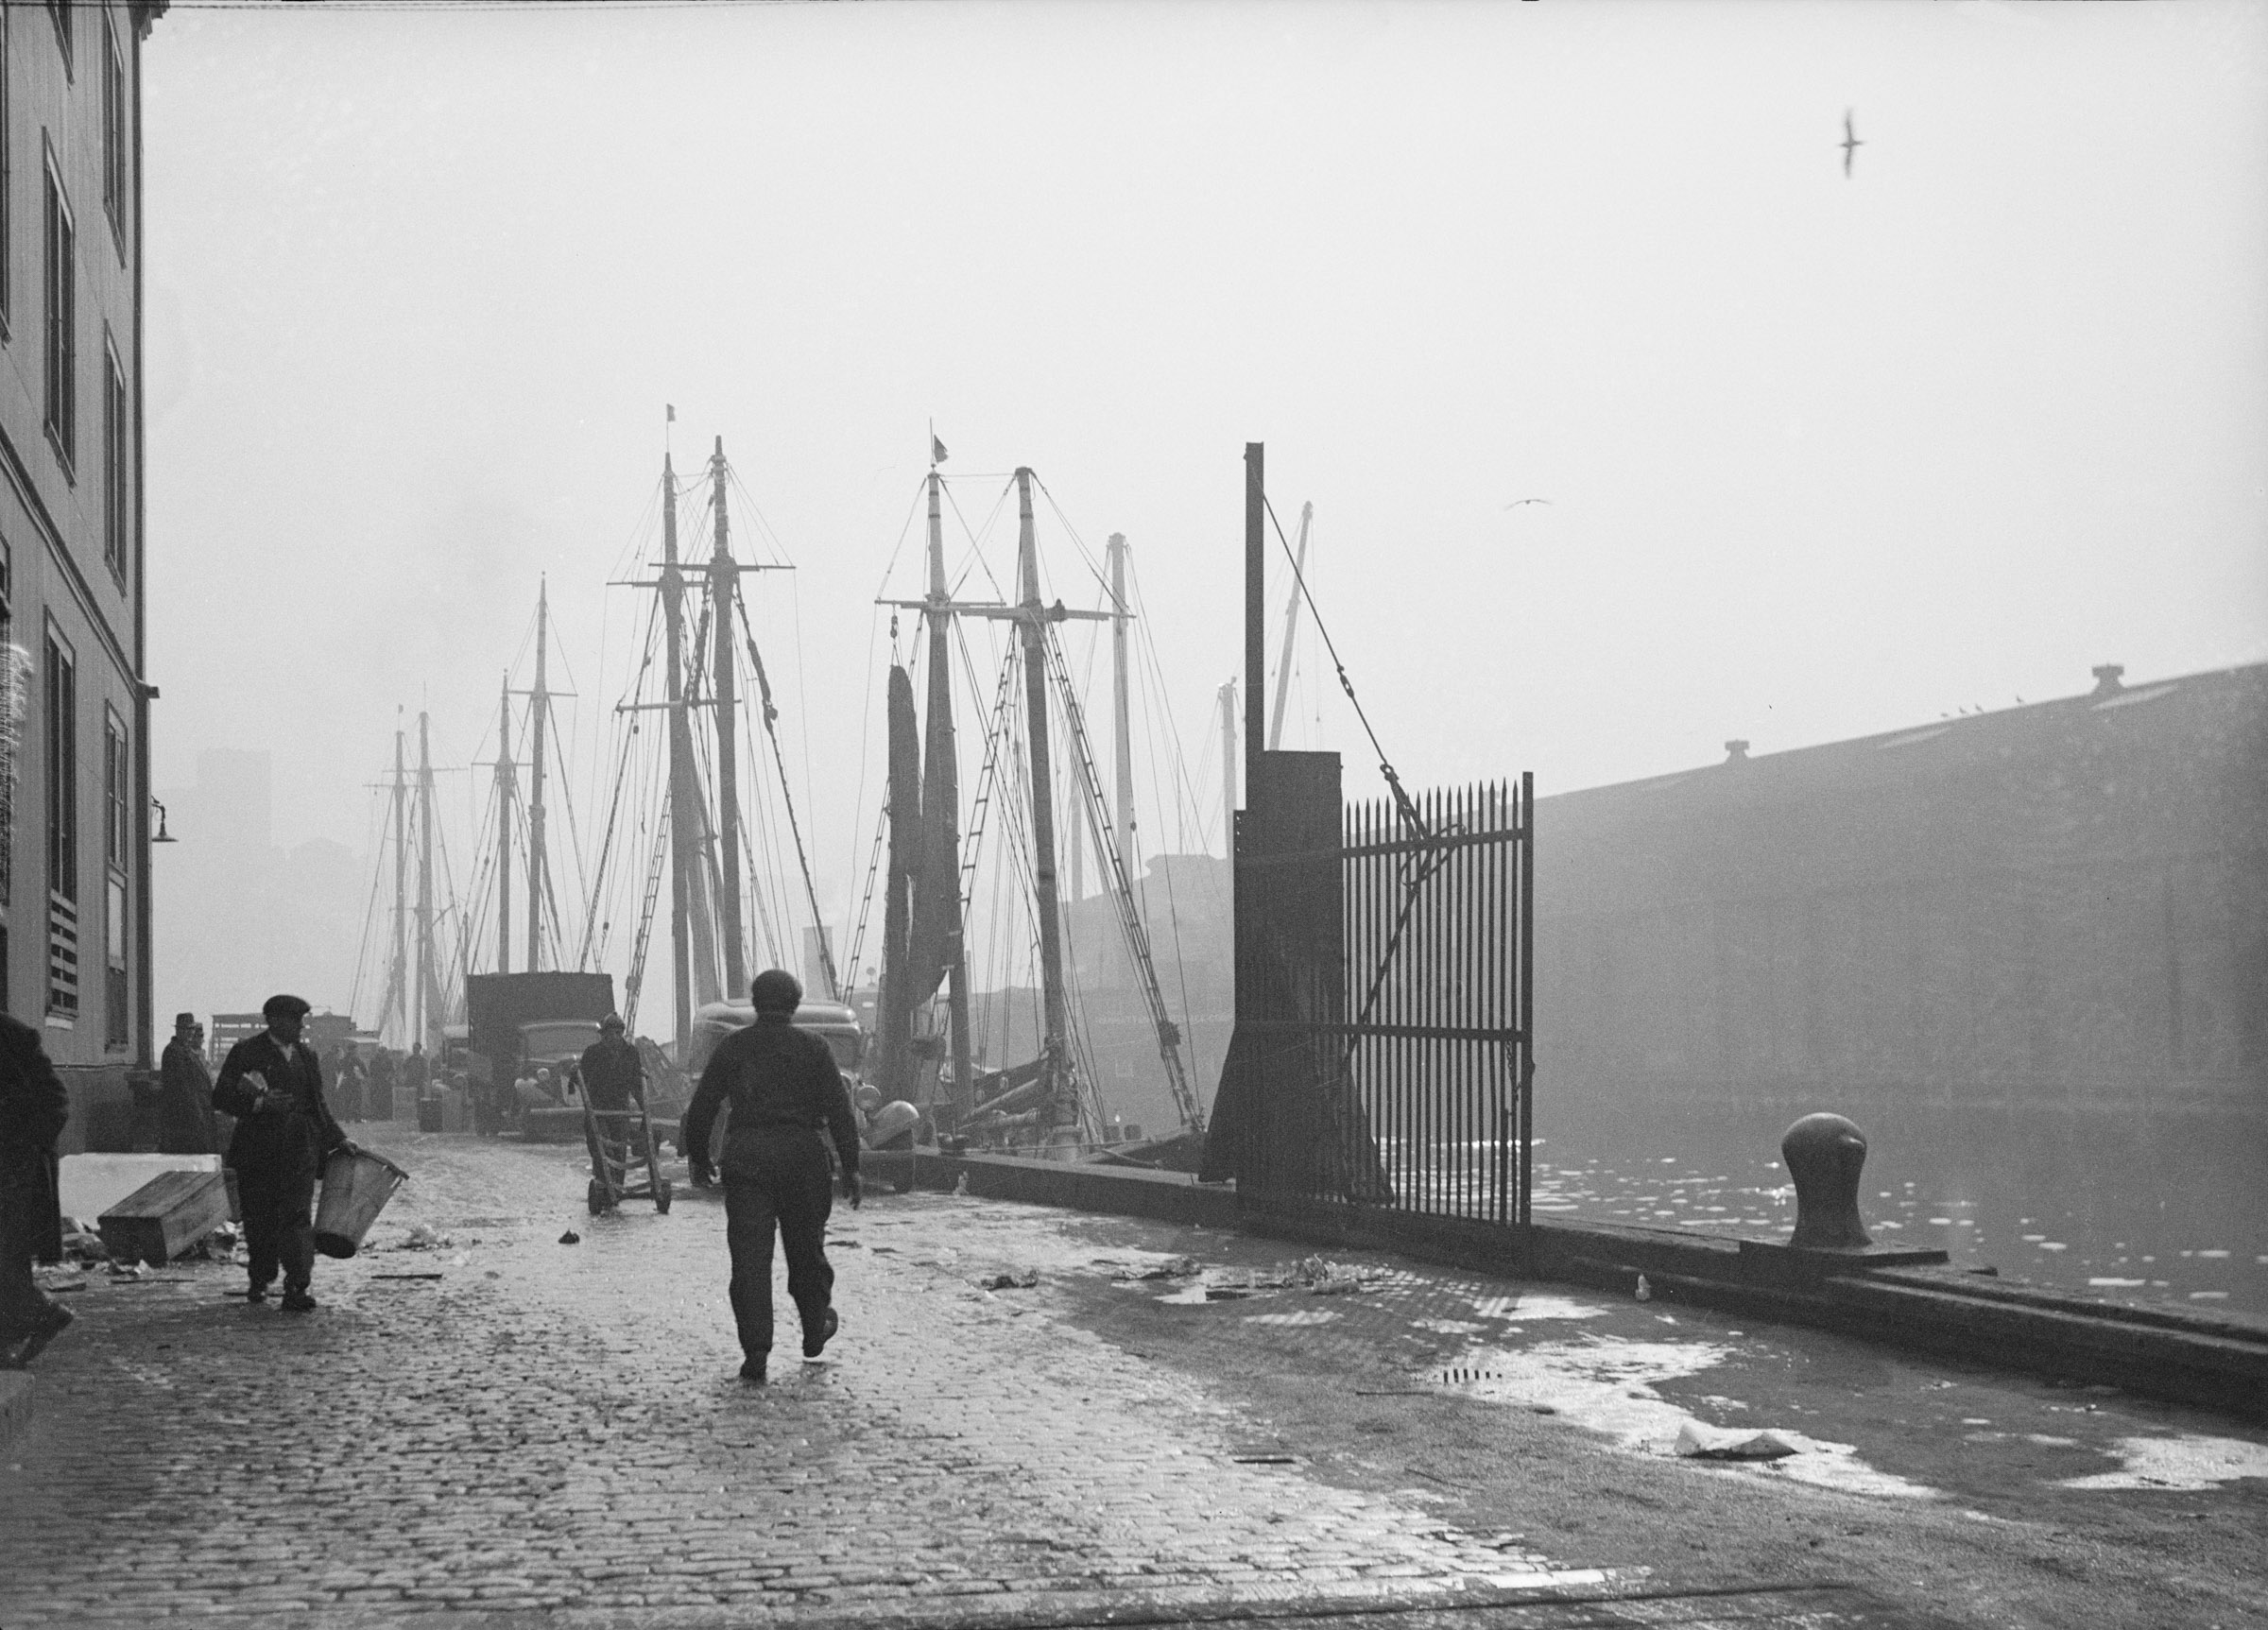 South Street Seaport. Date: January 13, 1937. Photographer unknown. WPA-FWP Collection, NYC Municipal Archives.